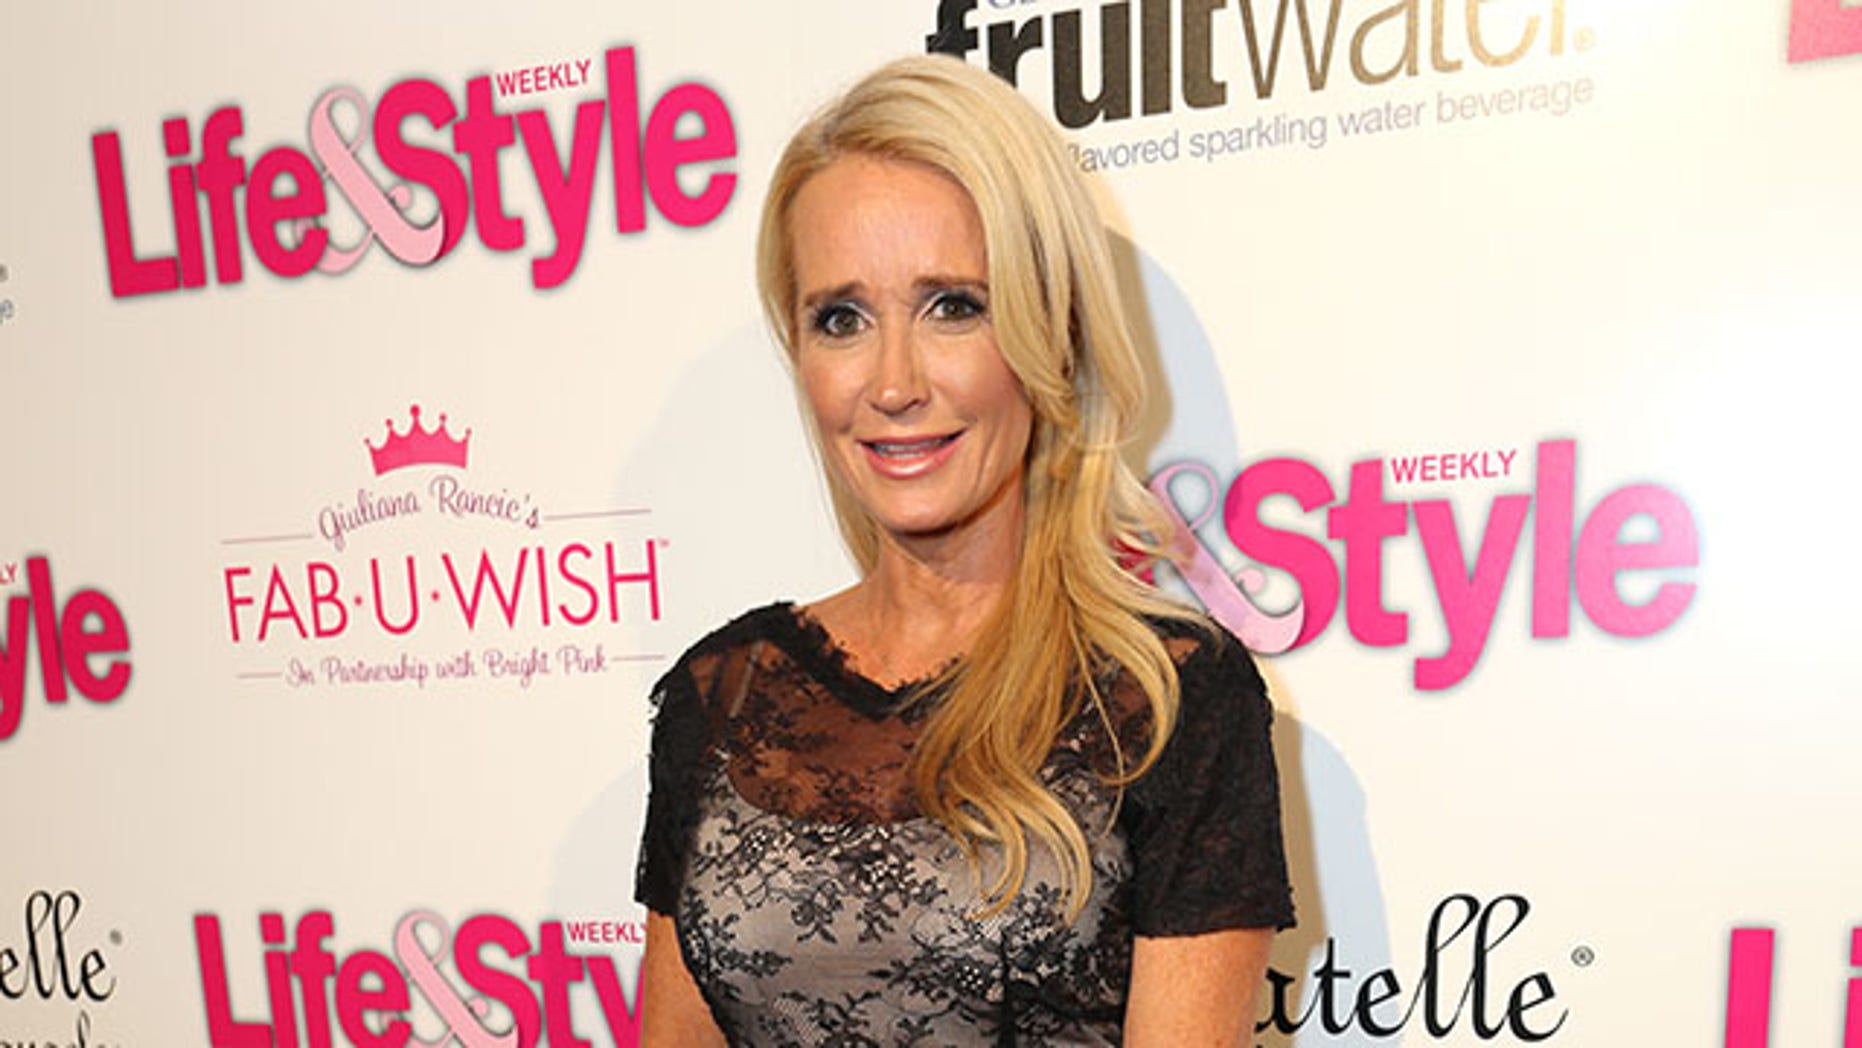 LOS ANGELES, CA - OCTOBER 09:  TV personality Kim Richards attends Hollywood in Bright Pink presented by Life & Style, hosted by Giuliana Rancic at Bagatelle on October 9, 2013 in Los Angeles, California.  (Photo by Rachel Murray/Getty Images for Life & Style)